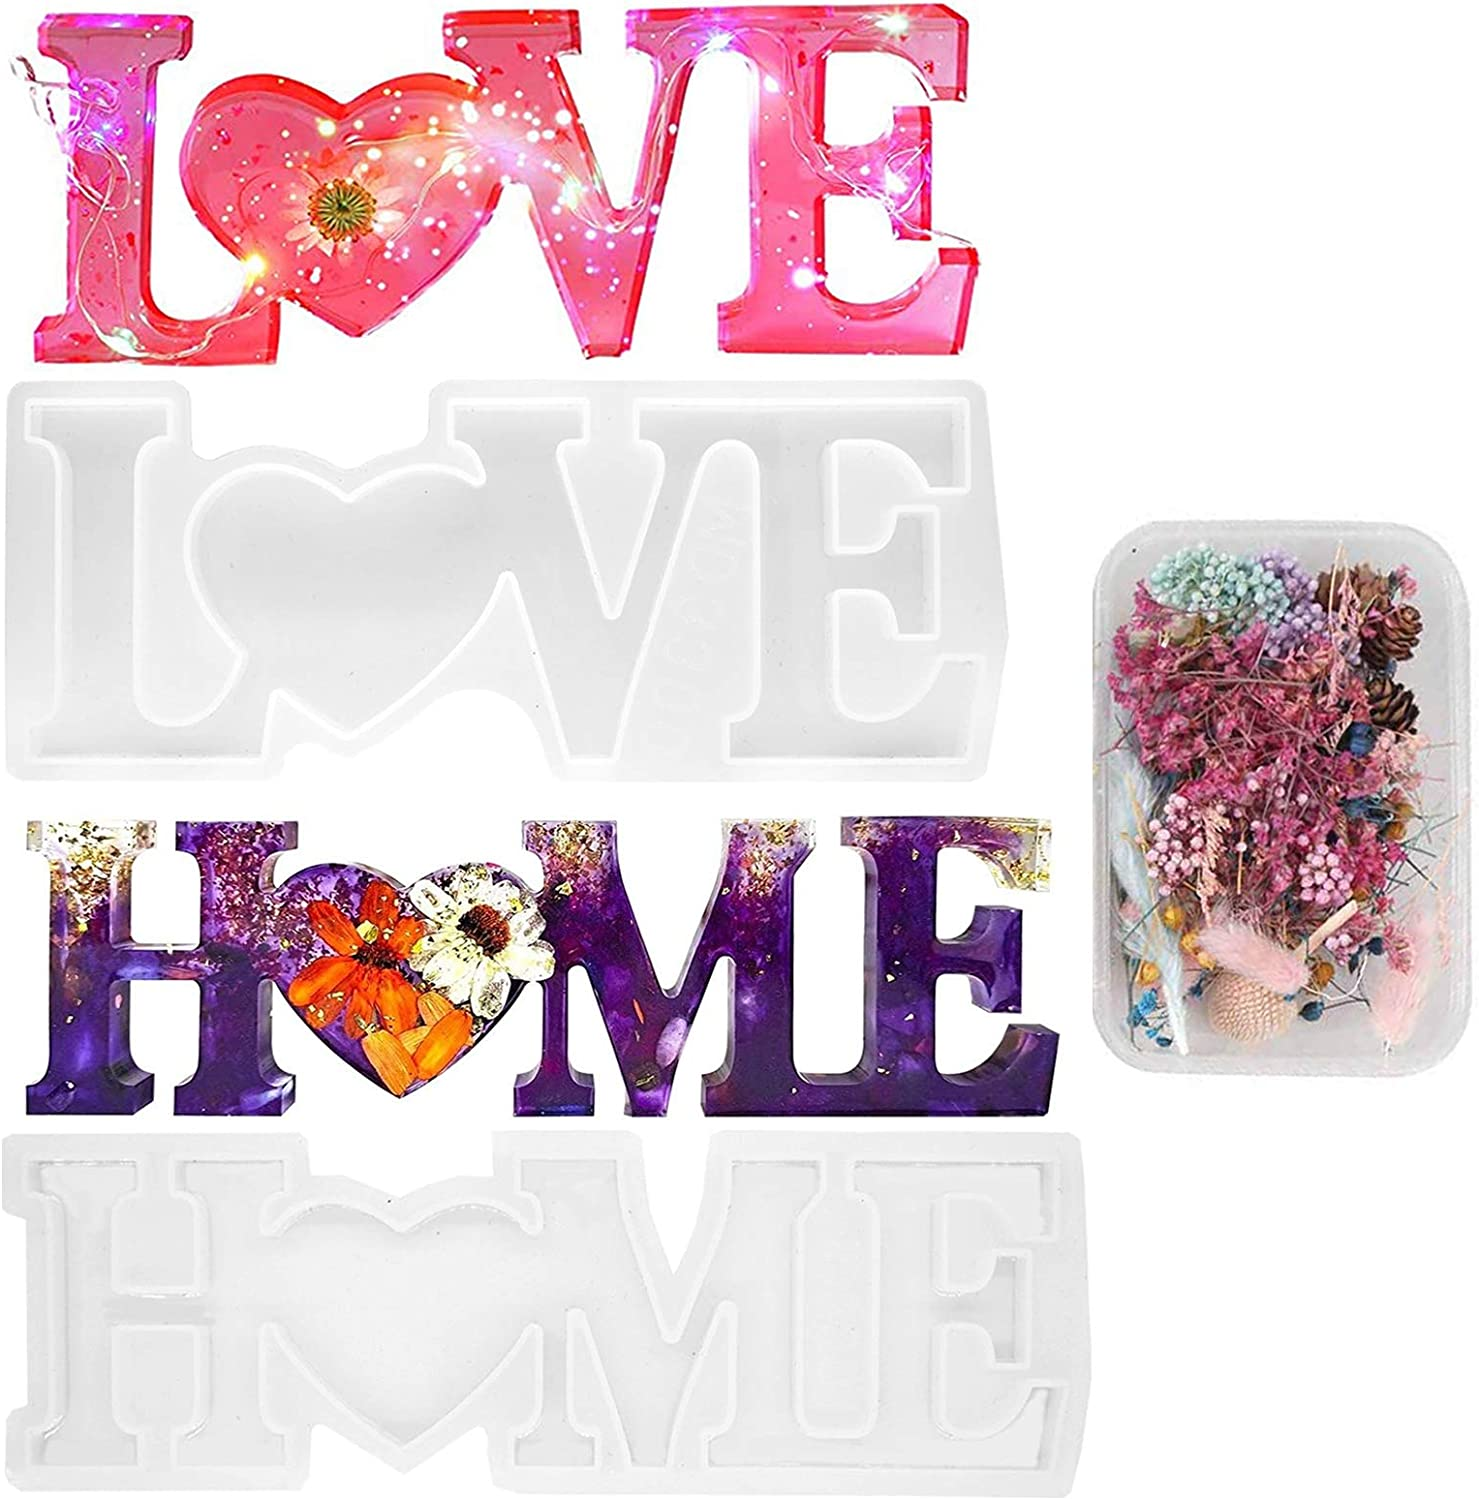 2Pcs Love Home Sign Resin Word Casting Molds Silicone Epoxy with Dried Flower for DIY Resin Project Table Home Decoration Ideal Birthday Valentine's Gift